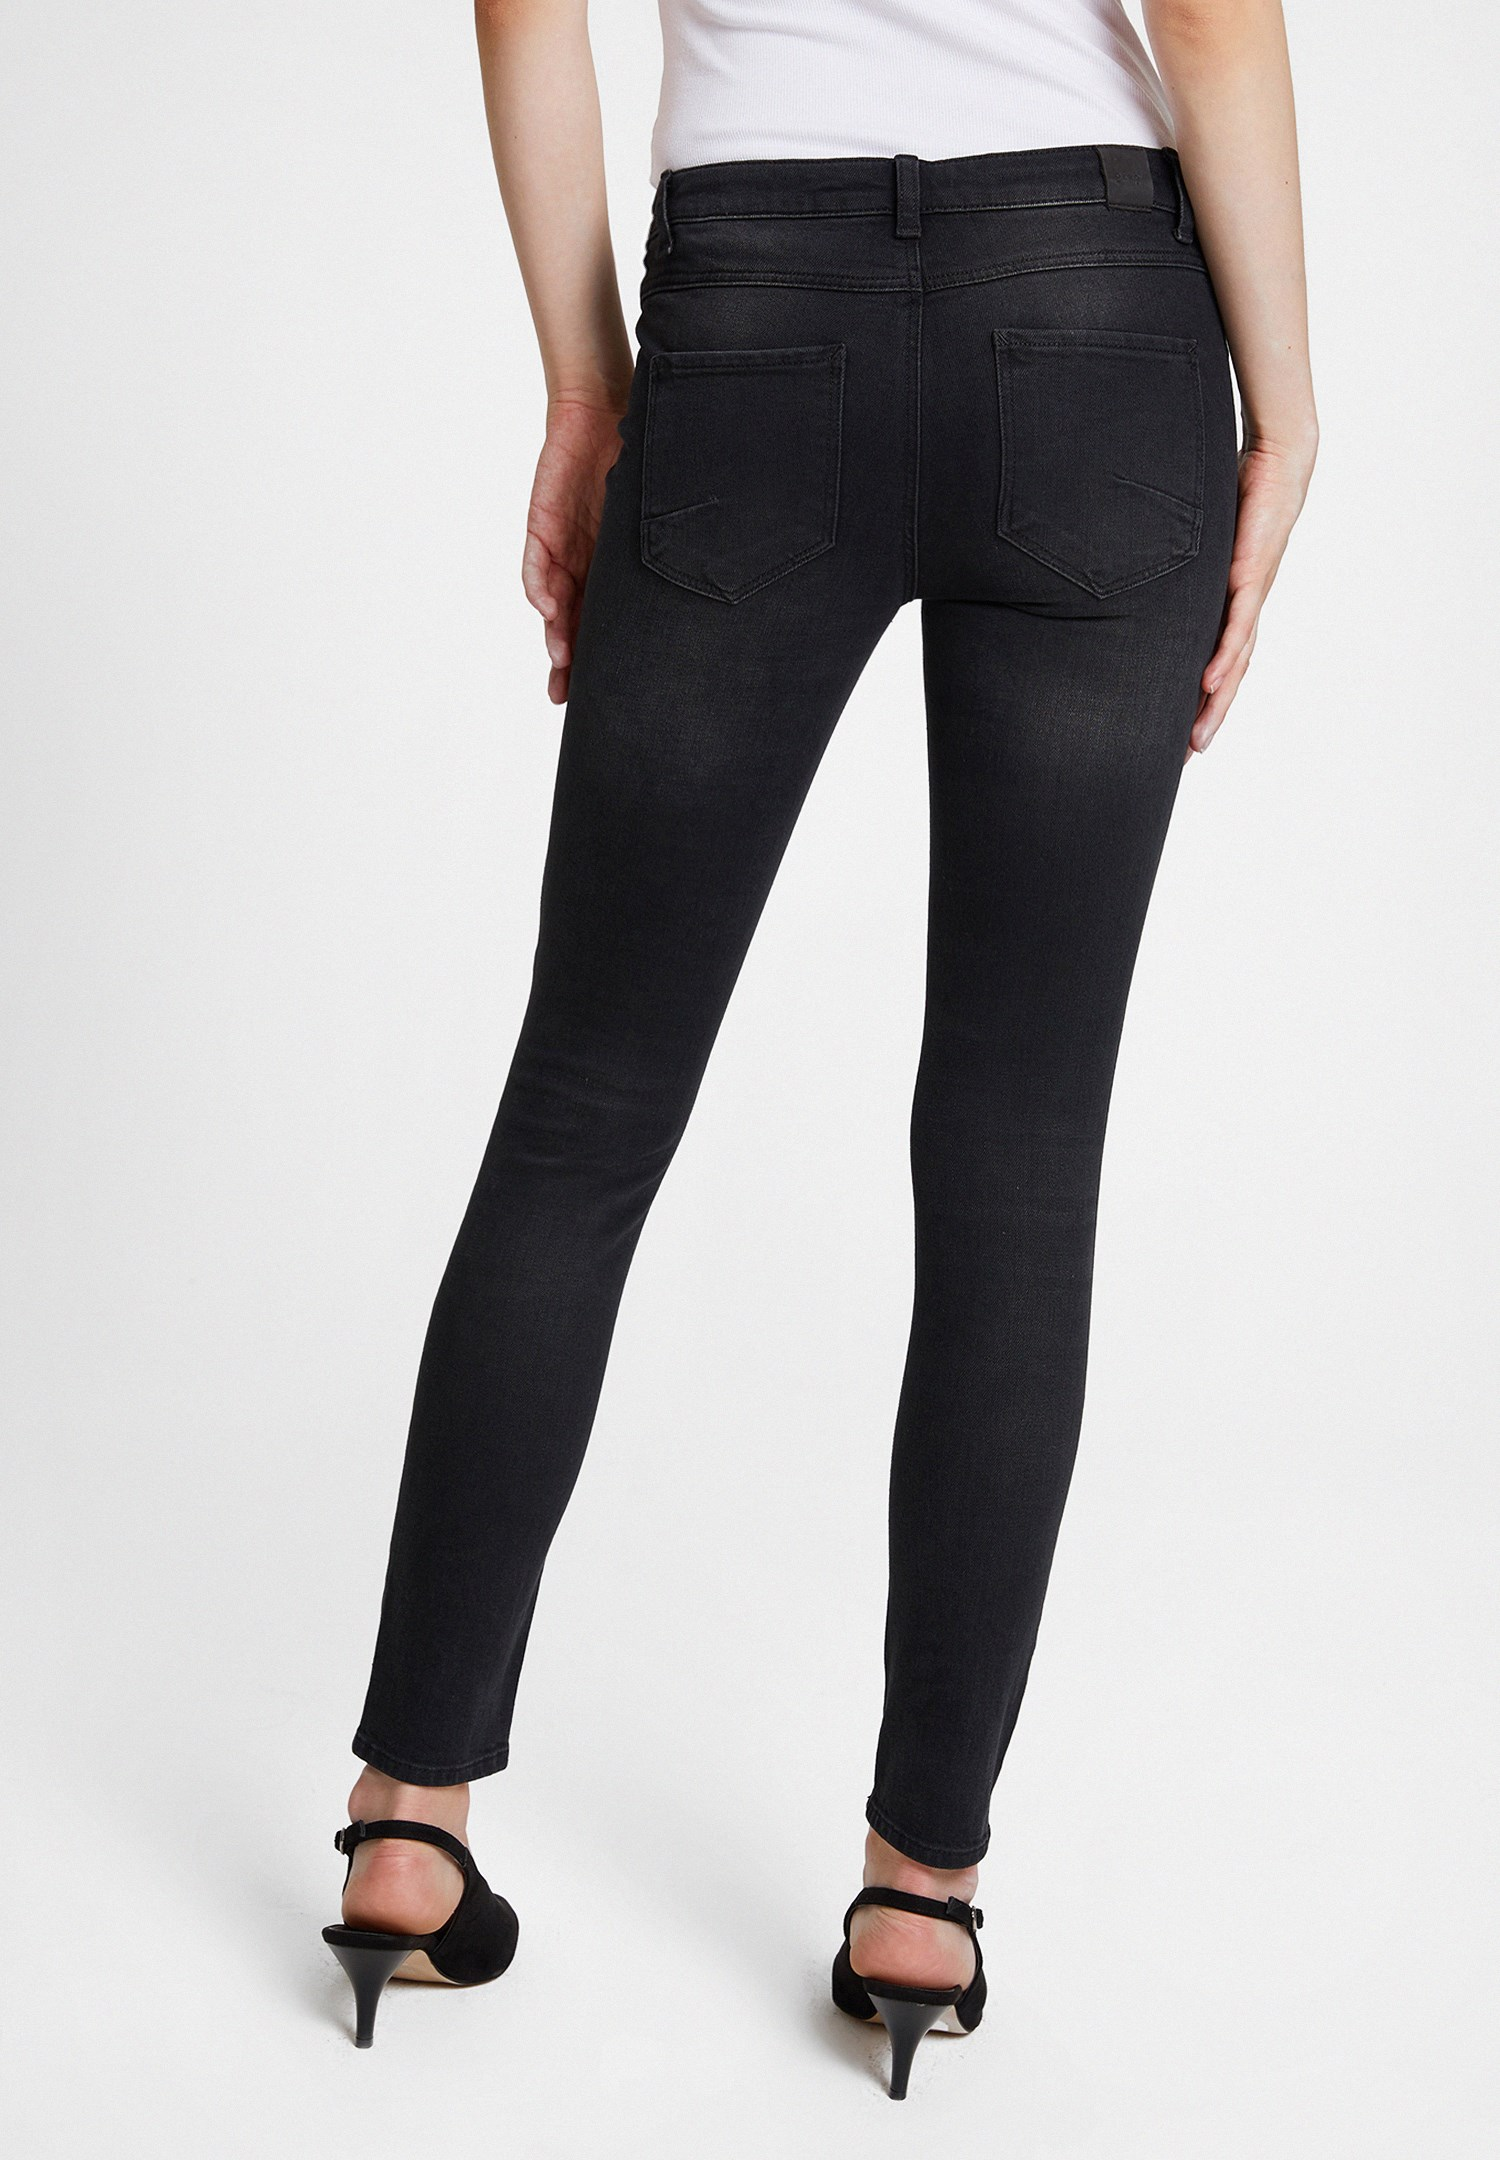 Women Black Low Rise Trousers with Zipper